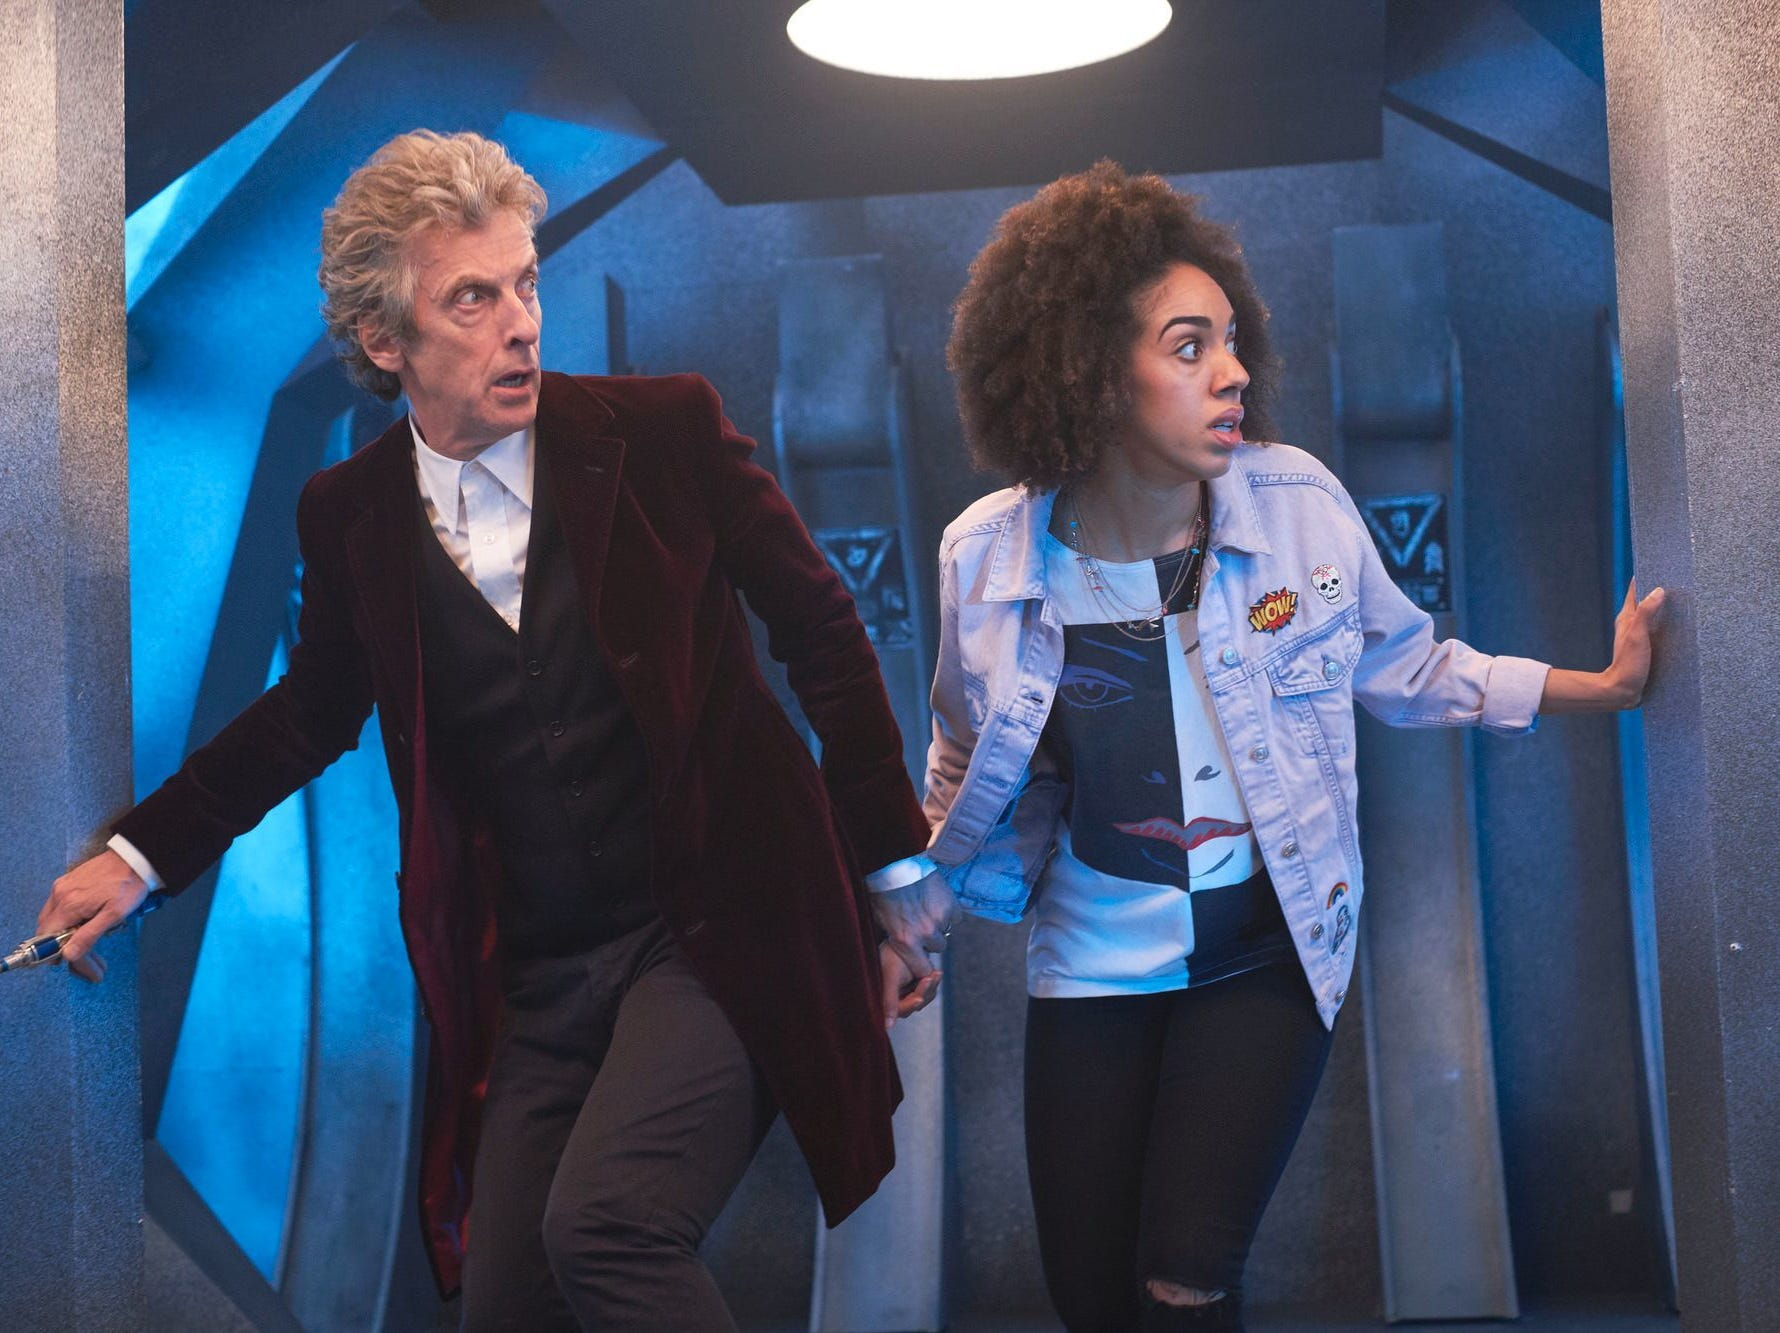 Bill Potts, played by Pearl Mackie, served as the Doctor's most recent companion, leaving after only a season with the Doctor.